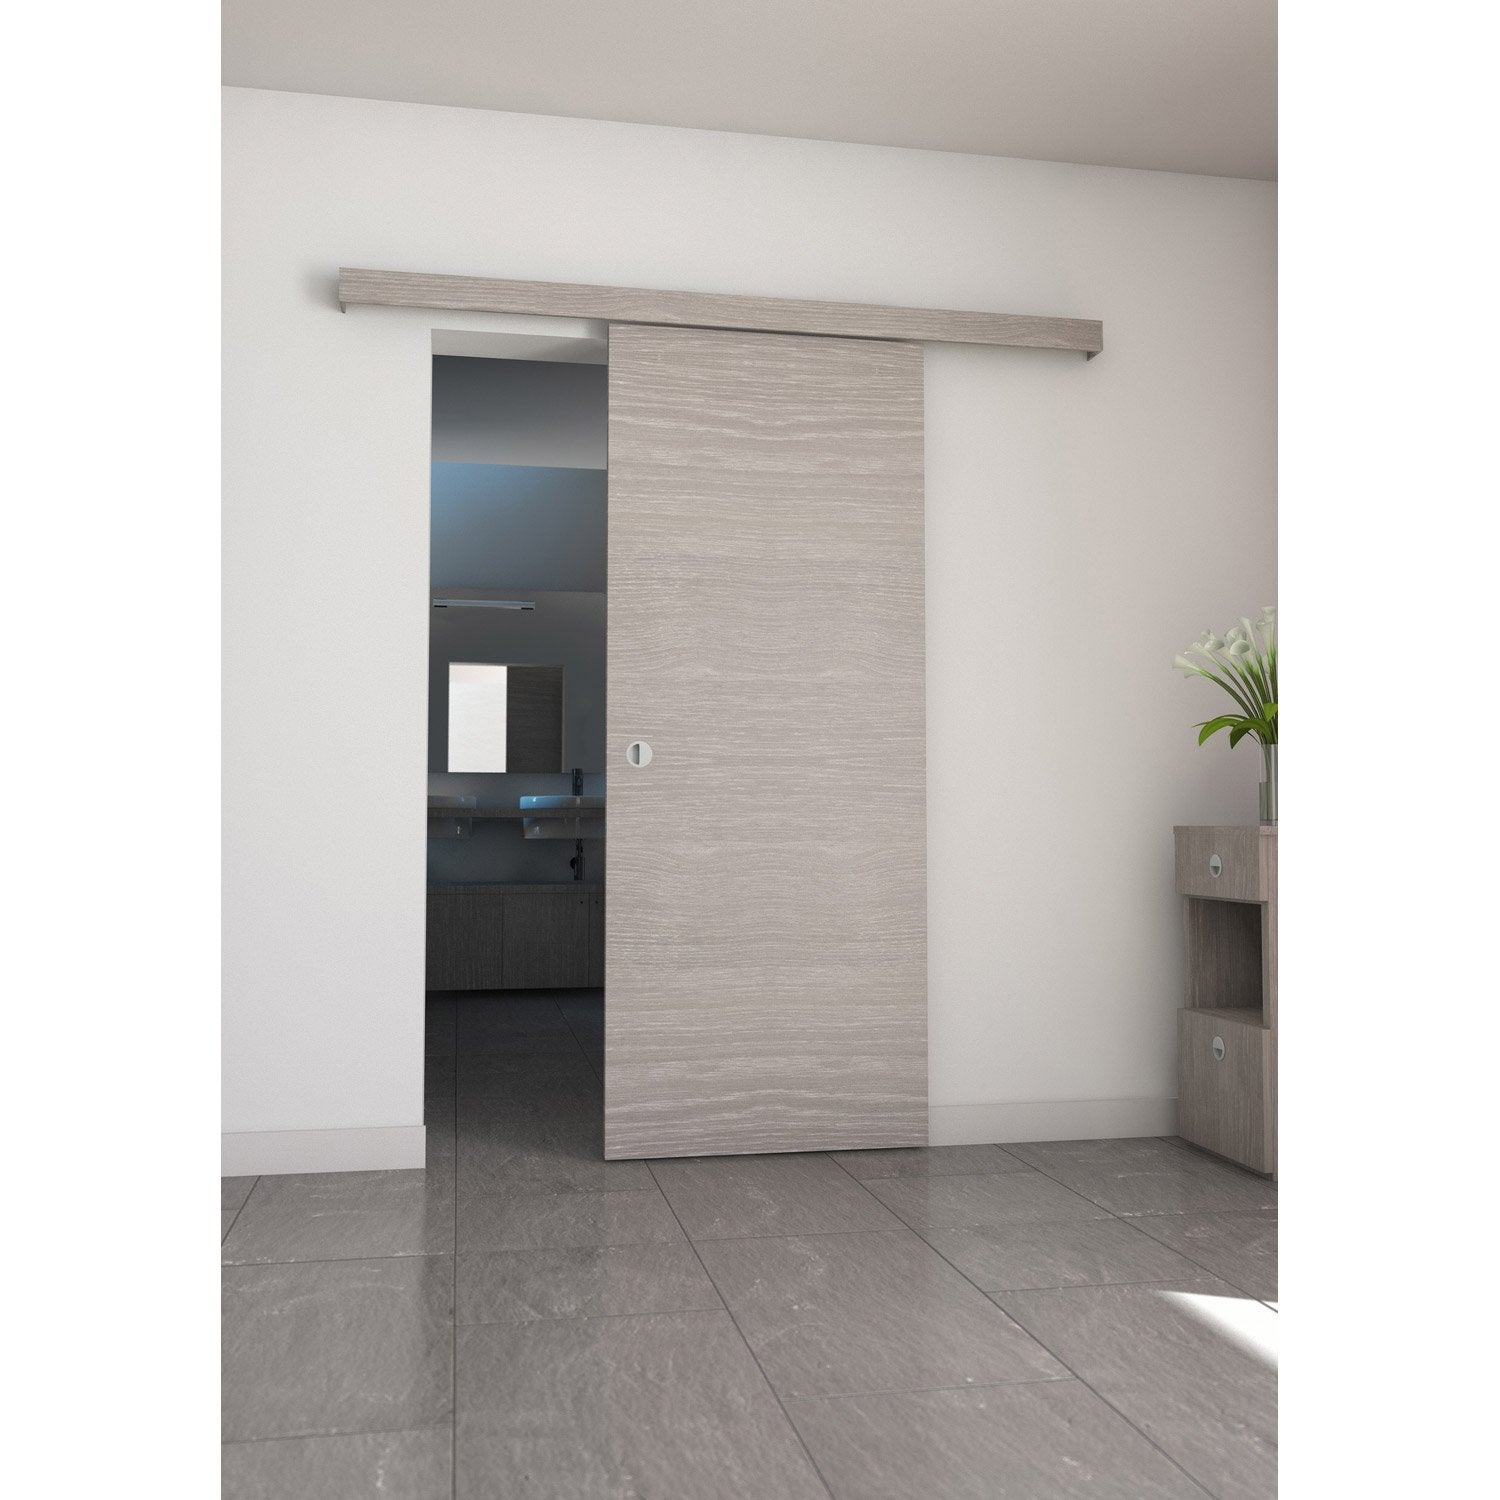 Ensemble porte coulissante coulicool mdf rev tu aluminium for Pose porte placard coulissante